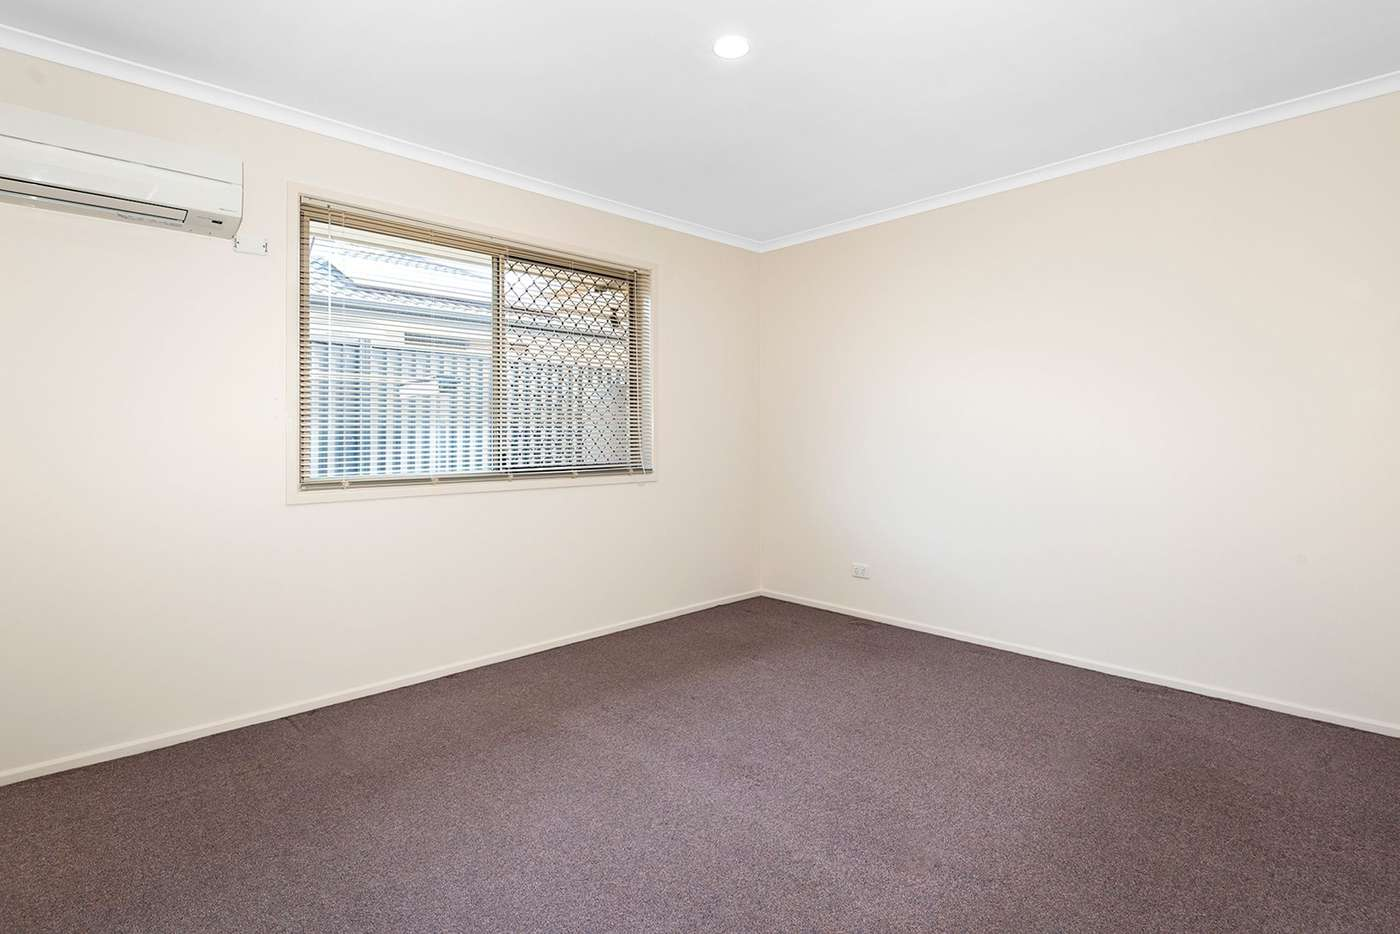 Sixth view of Homely house listing, 25 Maisie Place, Eight Mile Plains QLD 4113